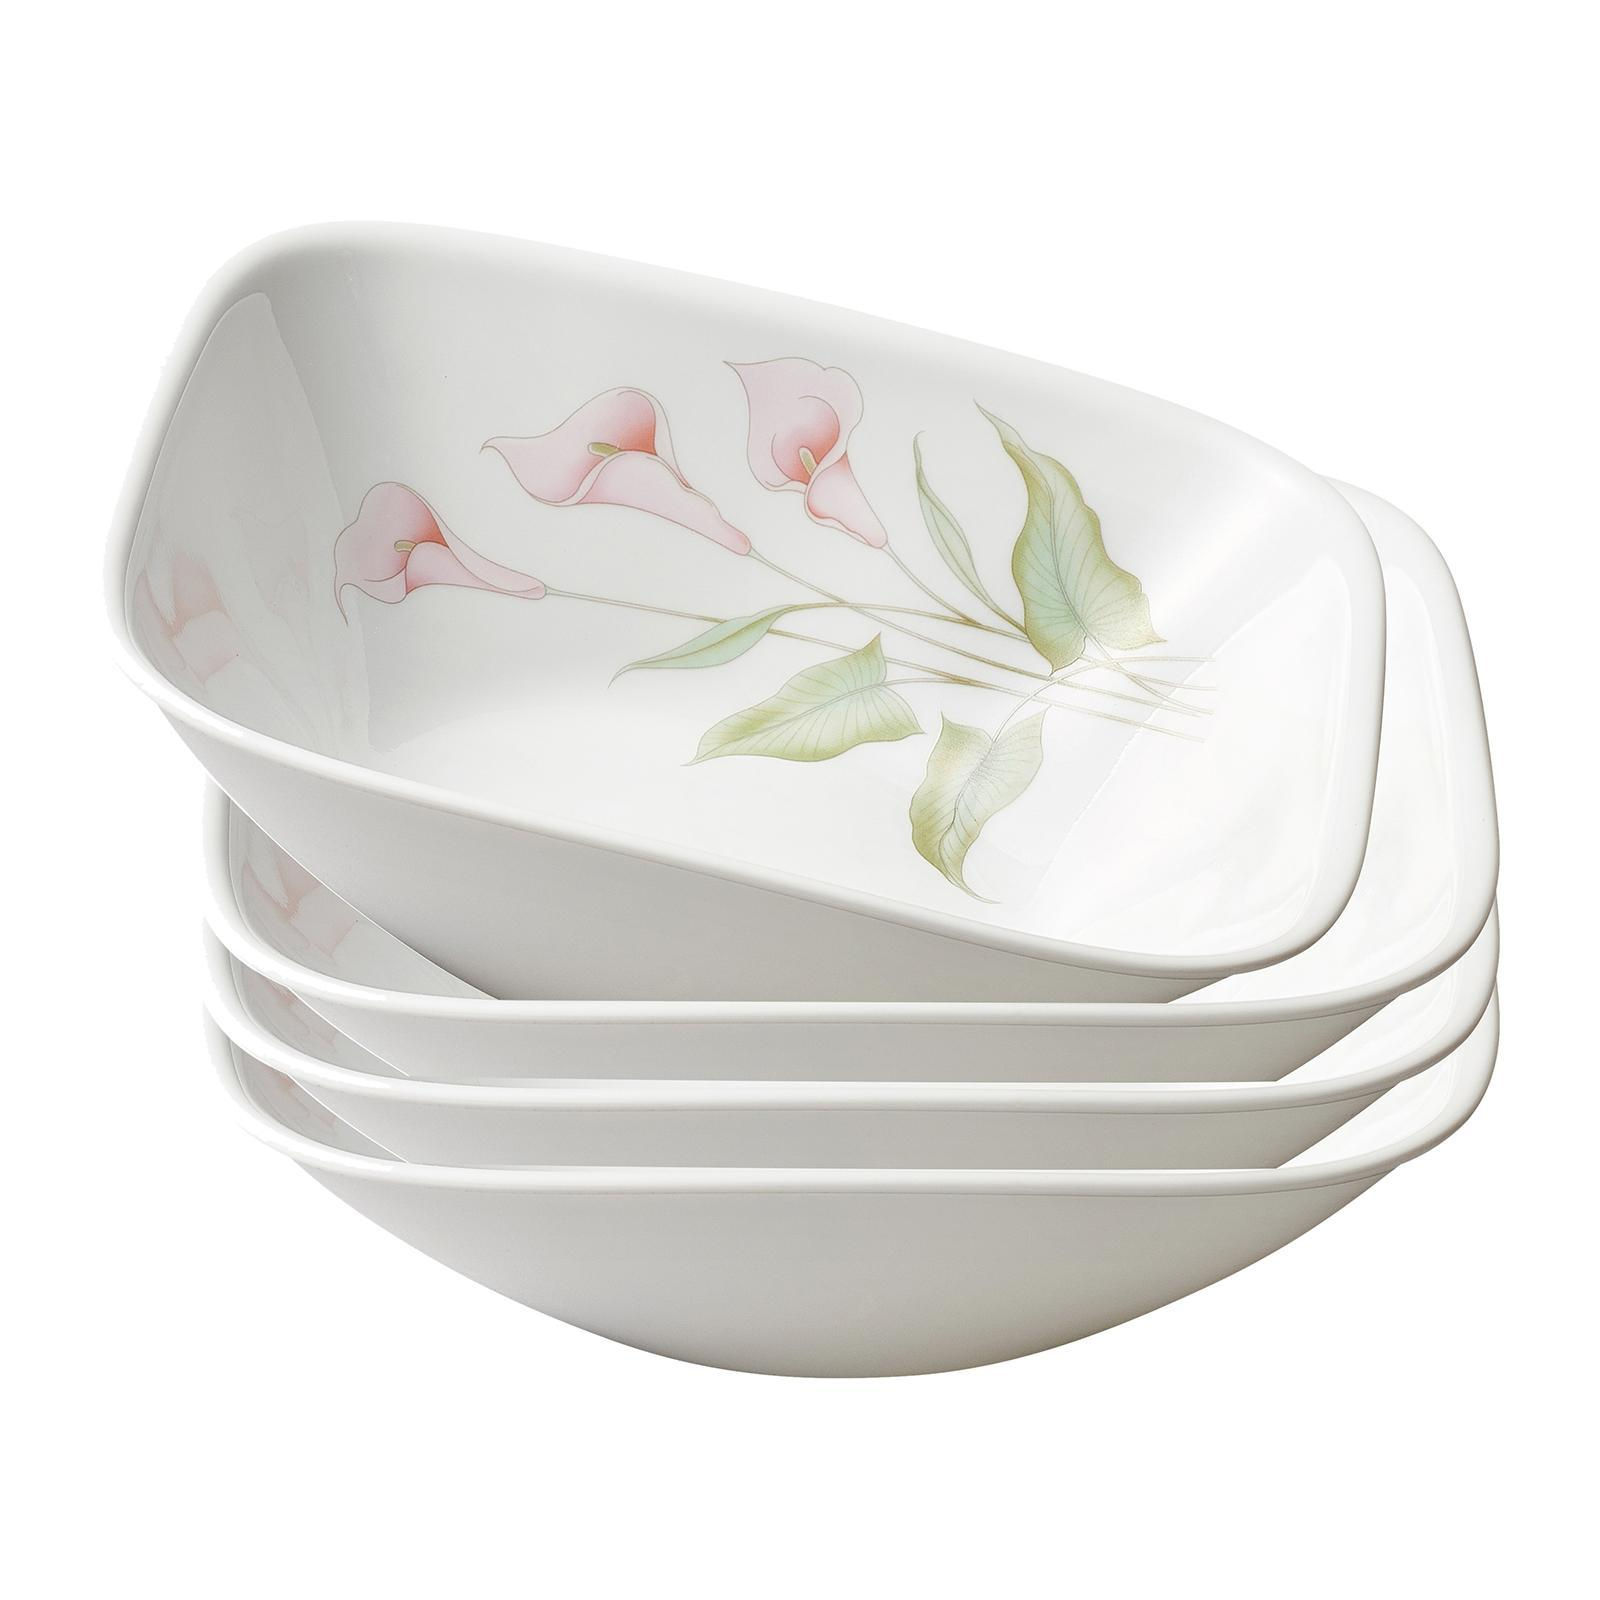 Corelle 4 PCS Square Round 32oz Bowl Set (Design: Lilyville)